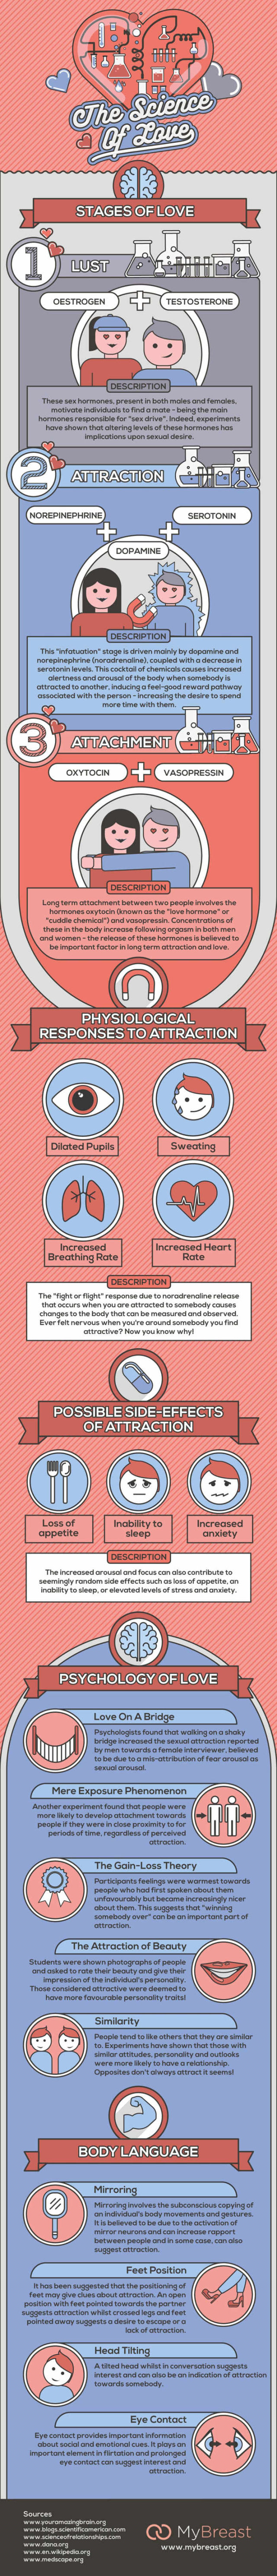 The Science Of Love infographic